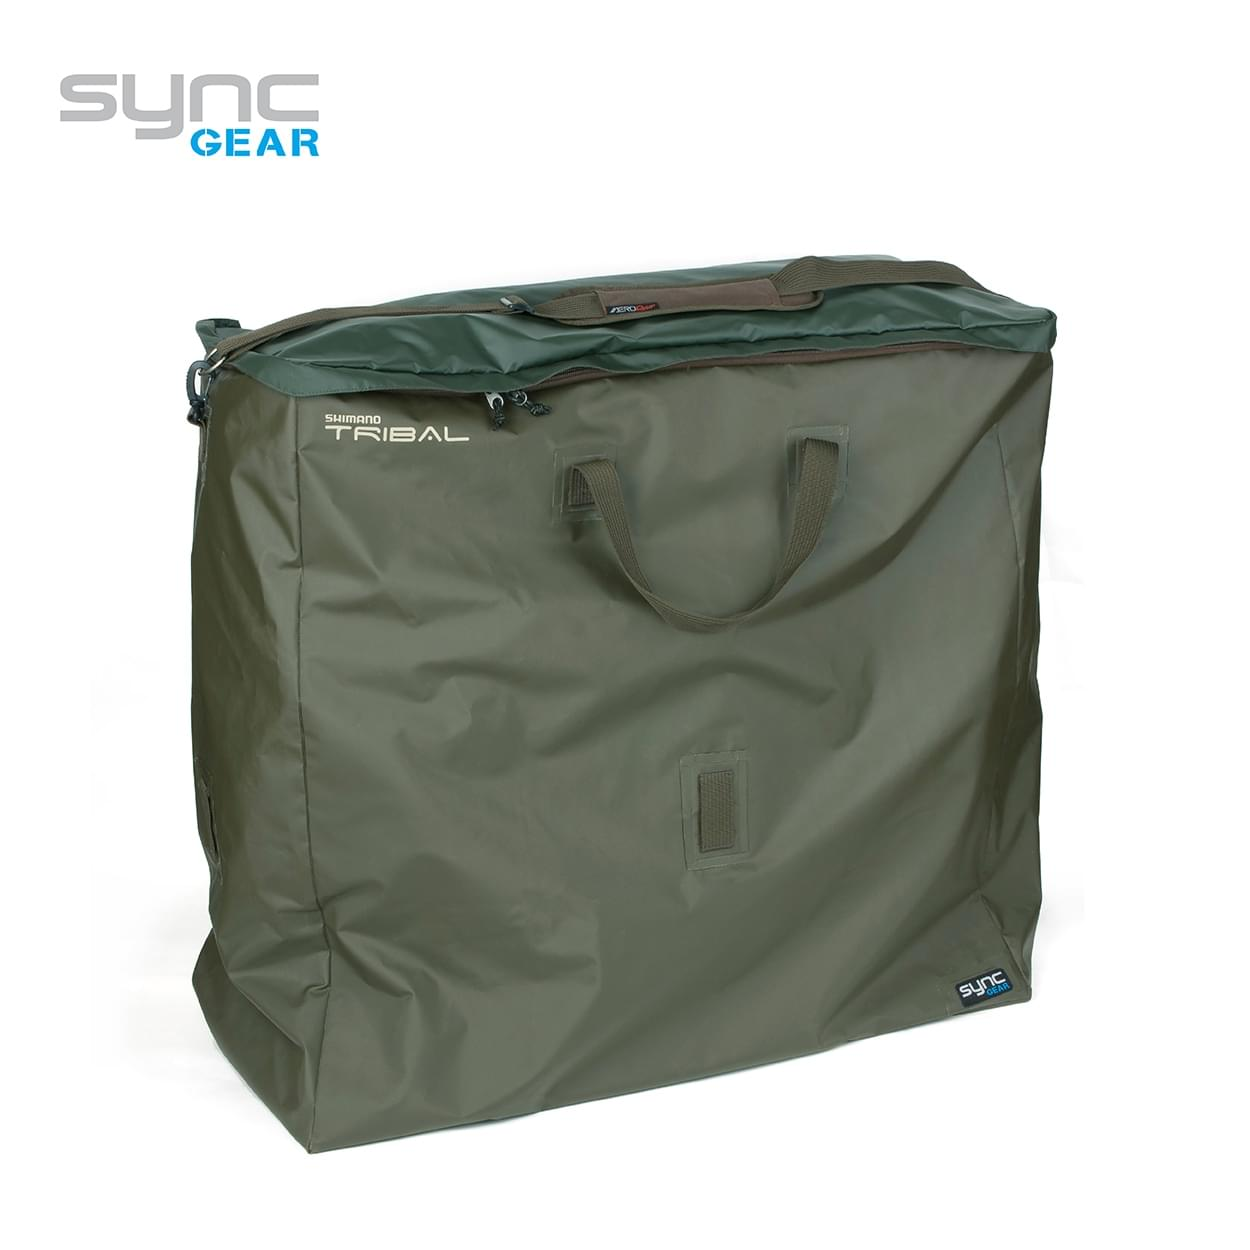 Shimano Sync Gear Bed Bag